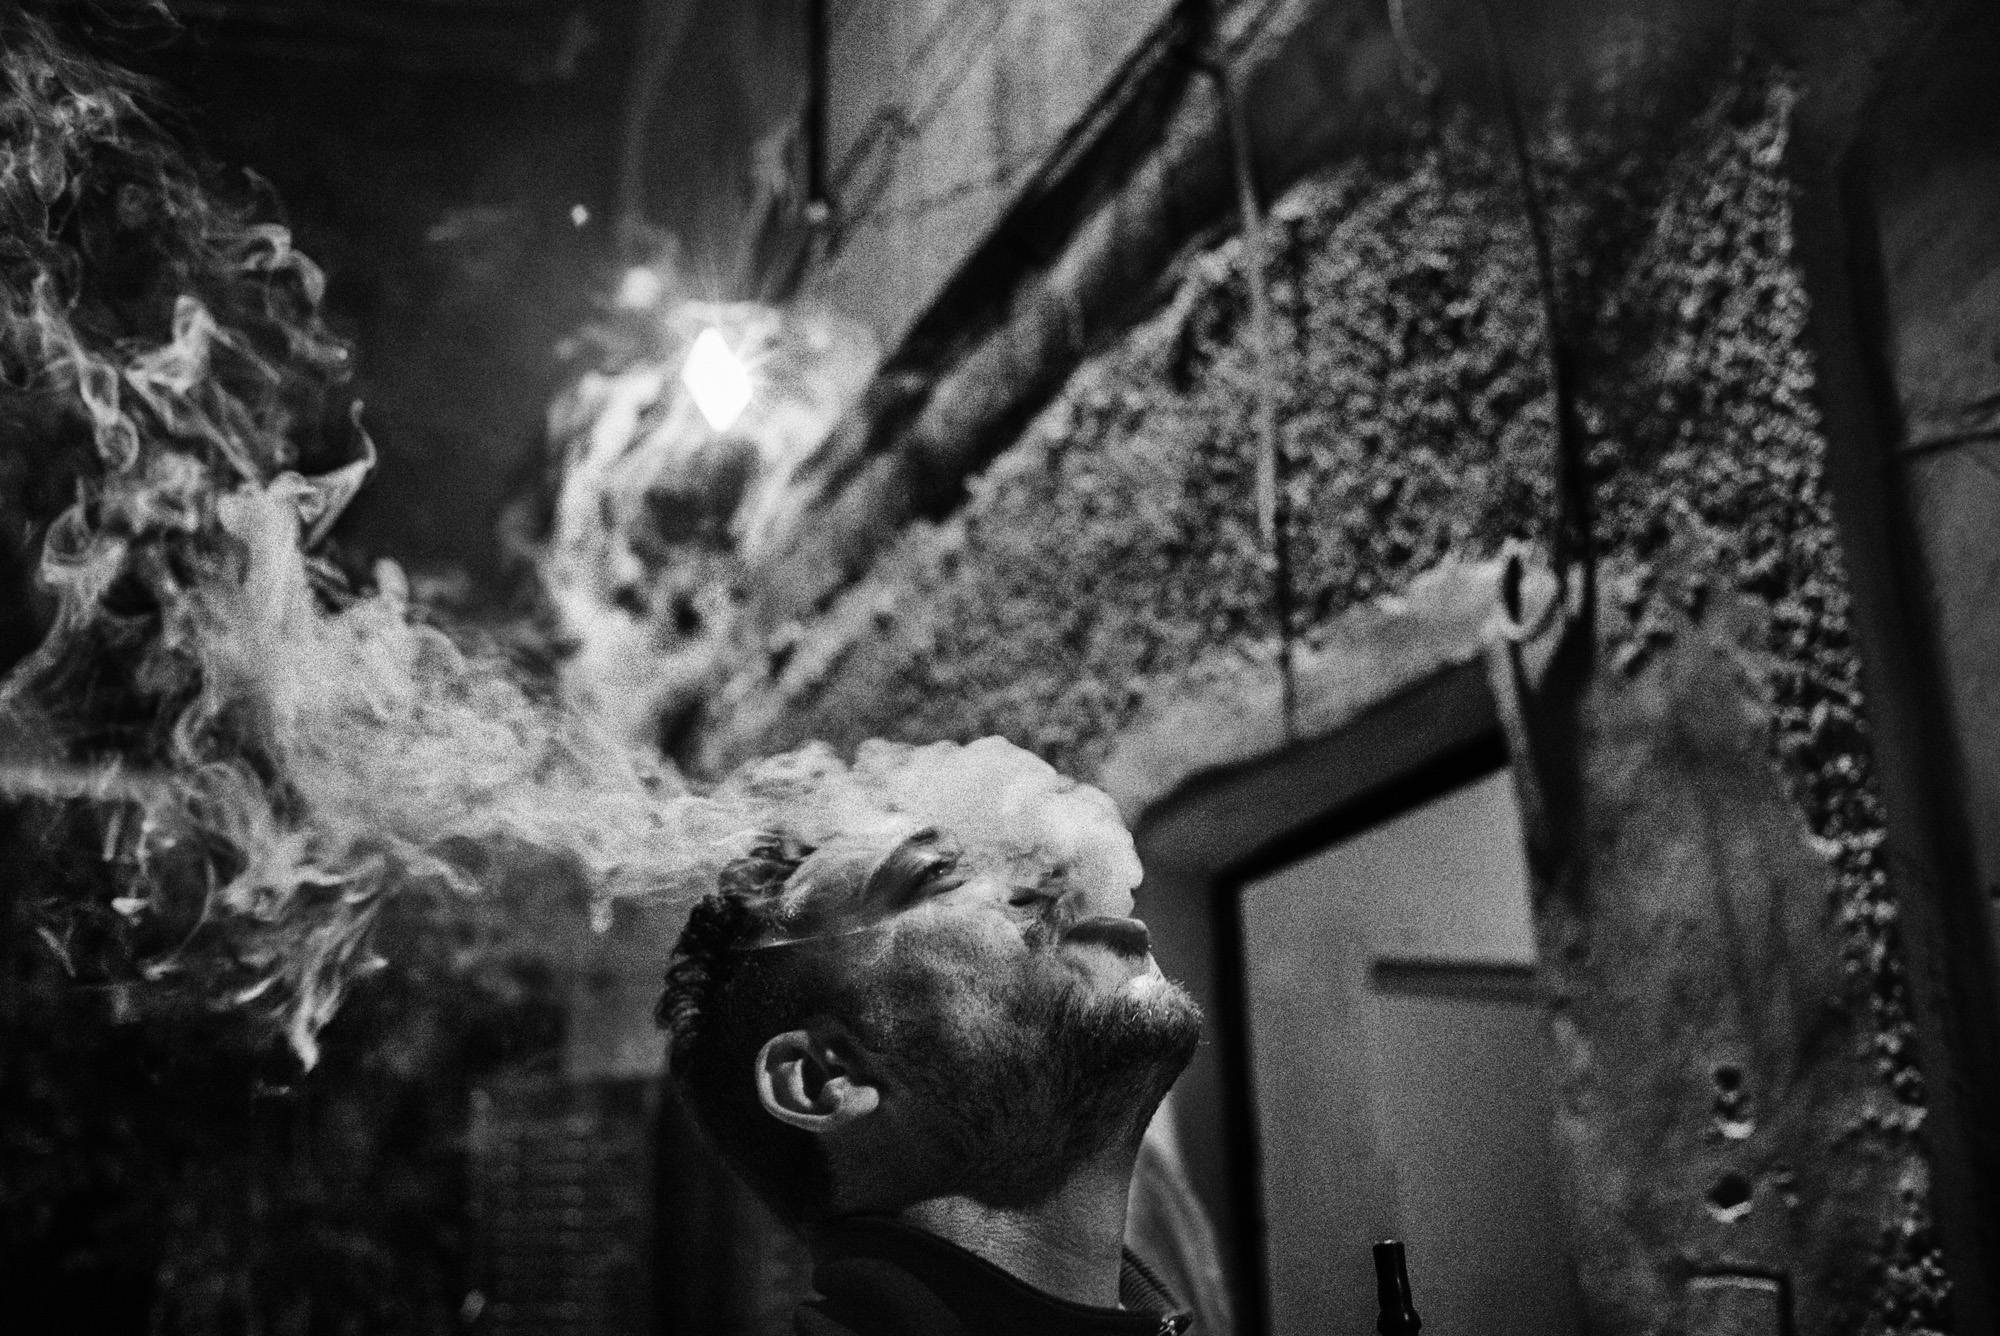 Muhannad Qafesha smokes shisha outside the headquarters of Youth Against Settlements, a Palestinian activist organization located in the Tel Rumeida neighborhood of Hebron, November 2015.